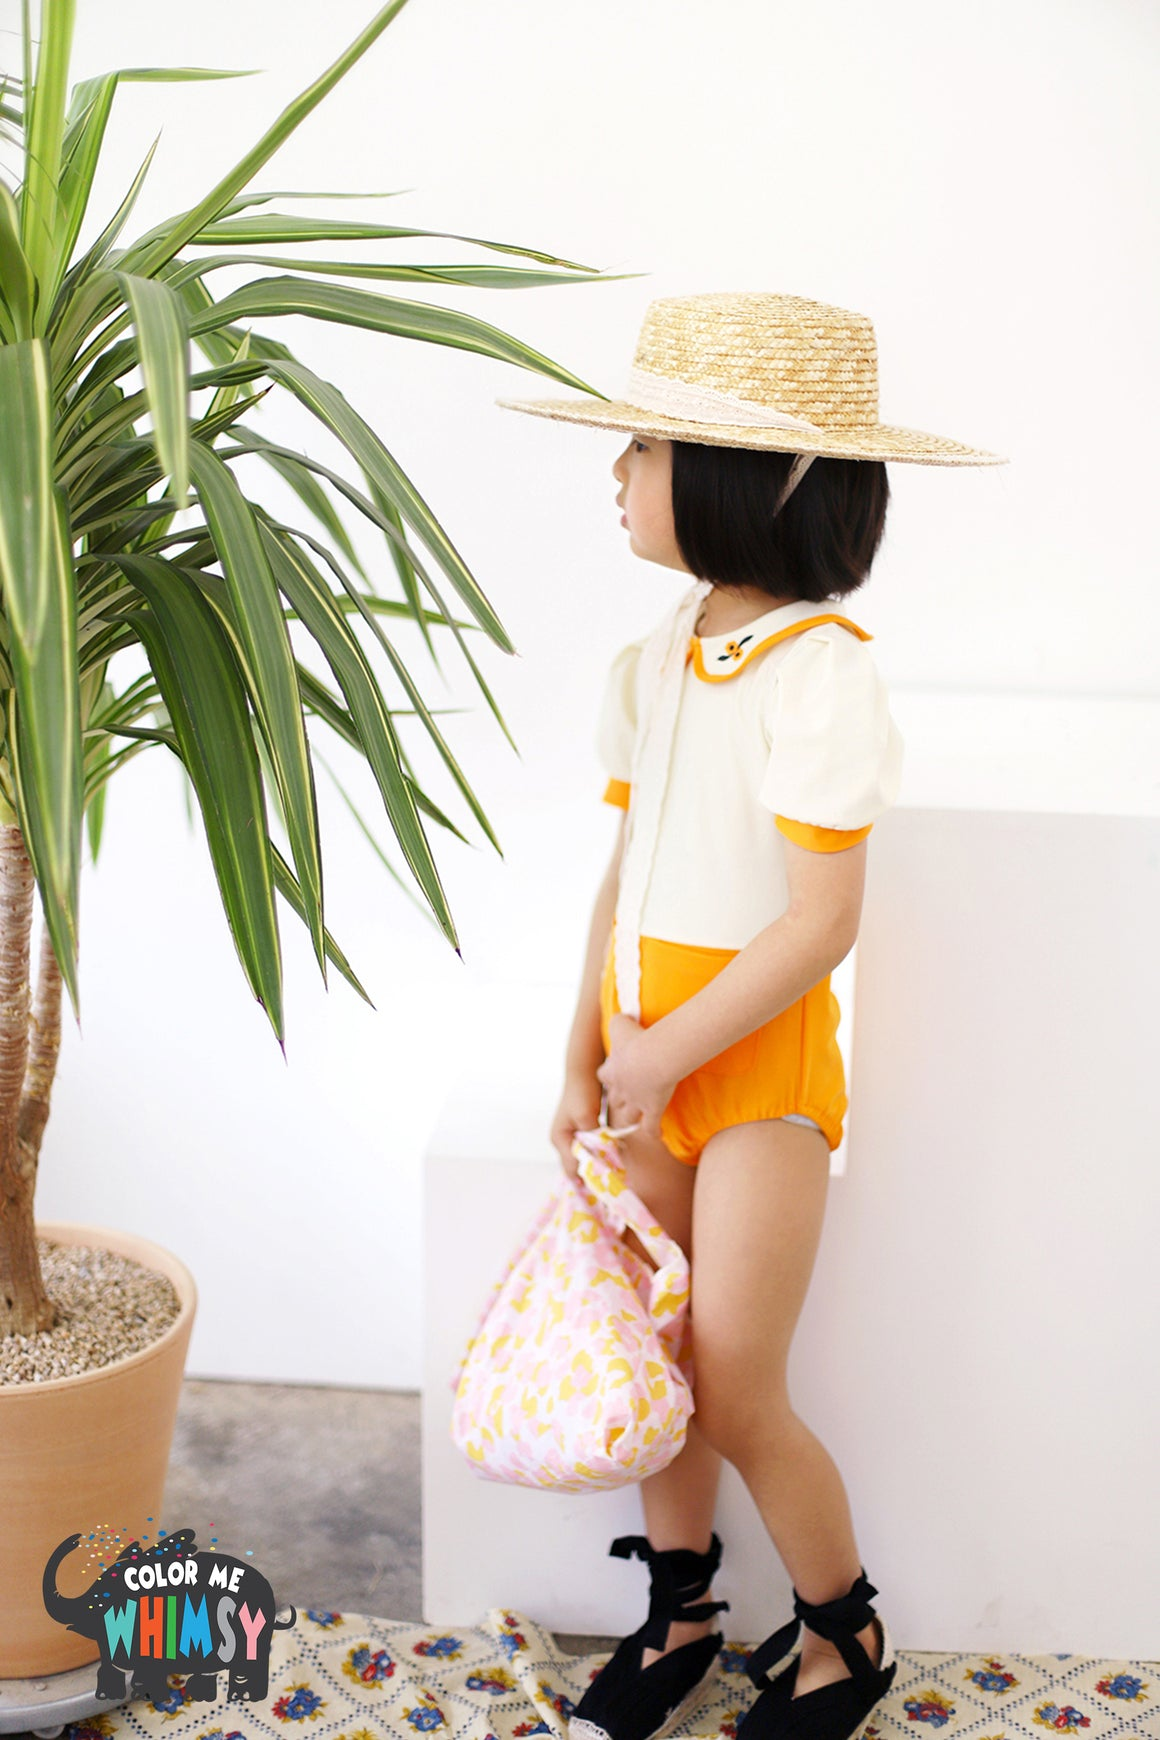 Amber Vintage Momoni Swimwear - Color Me WHIMSY